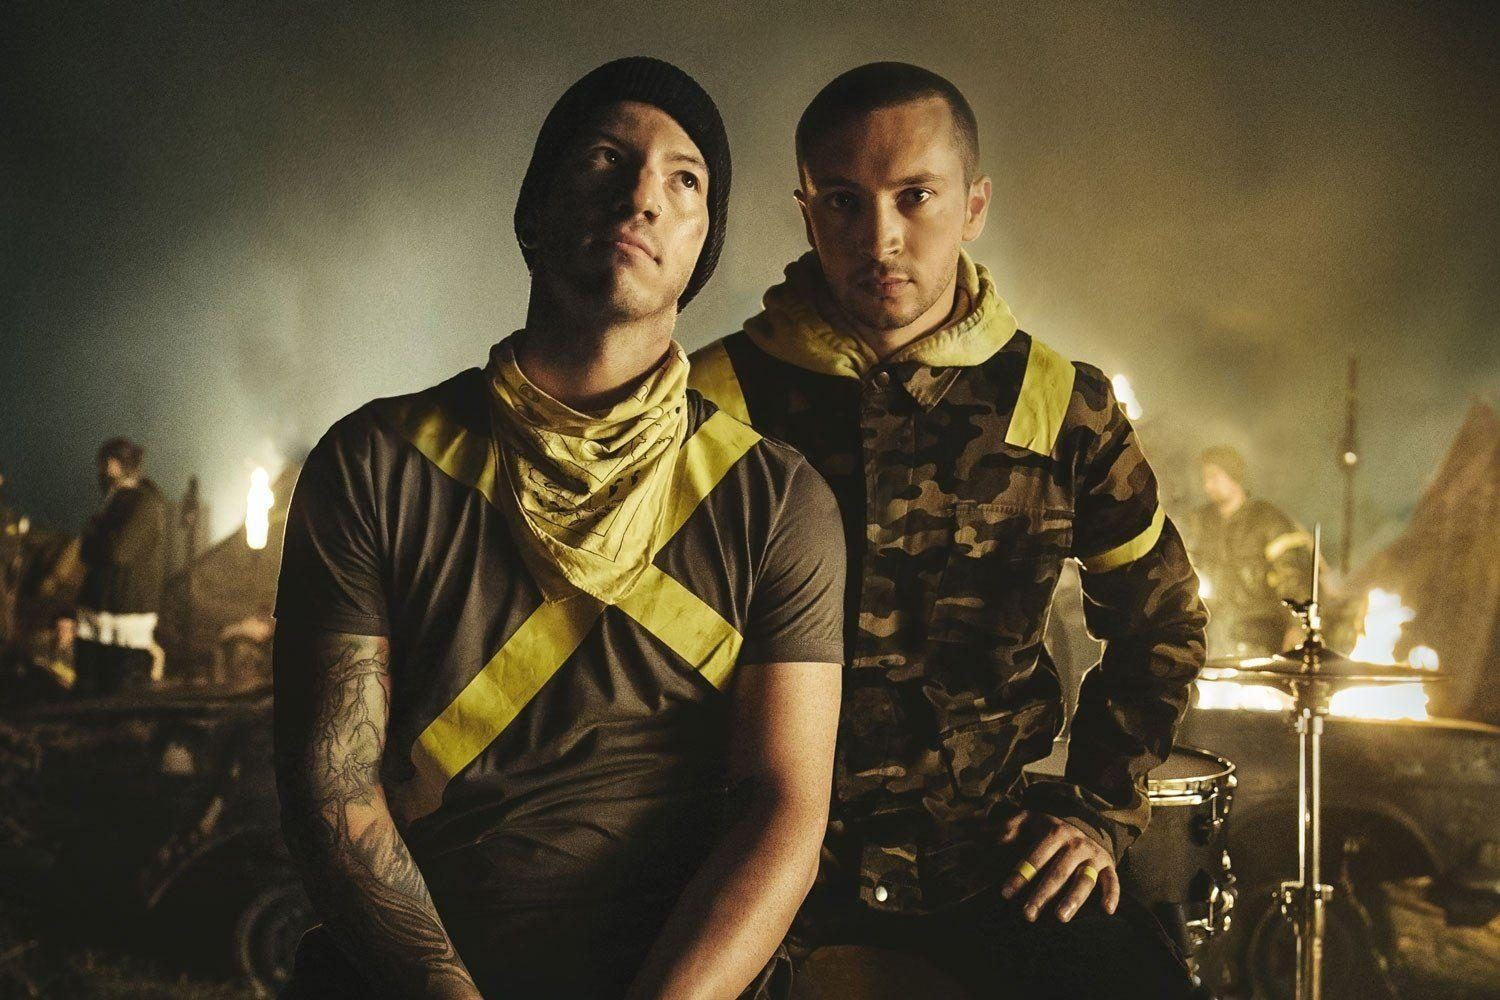 Twenty One Pilots are going to play Radio 1's Big Weekend